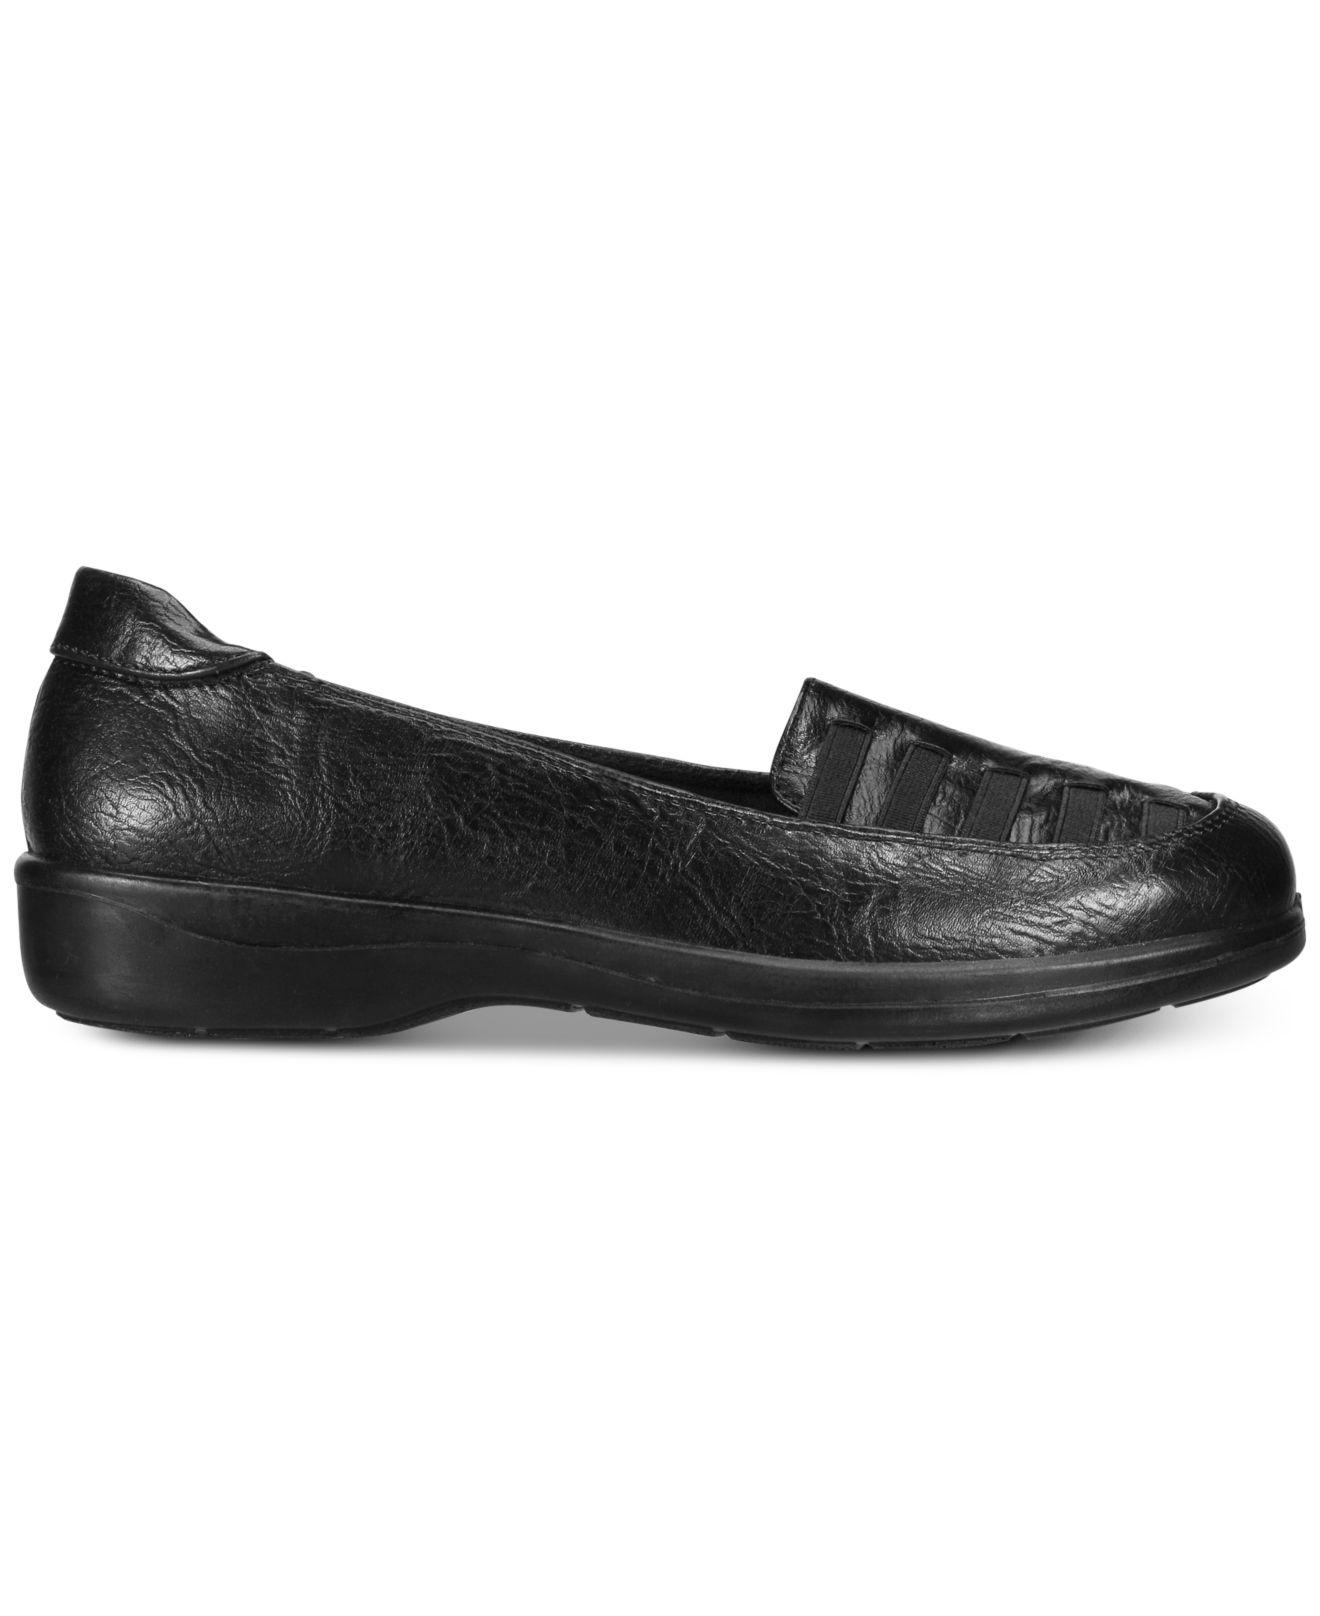 bf156439107c0 Lyst - Easy Street Genesis Loafers in Black